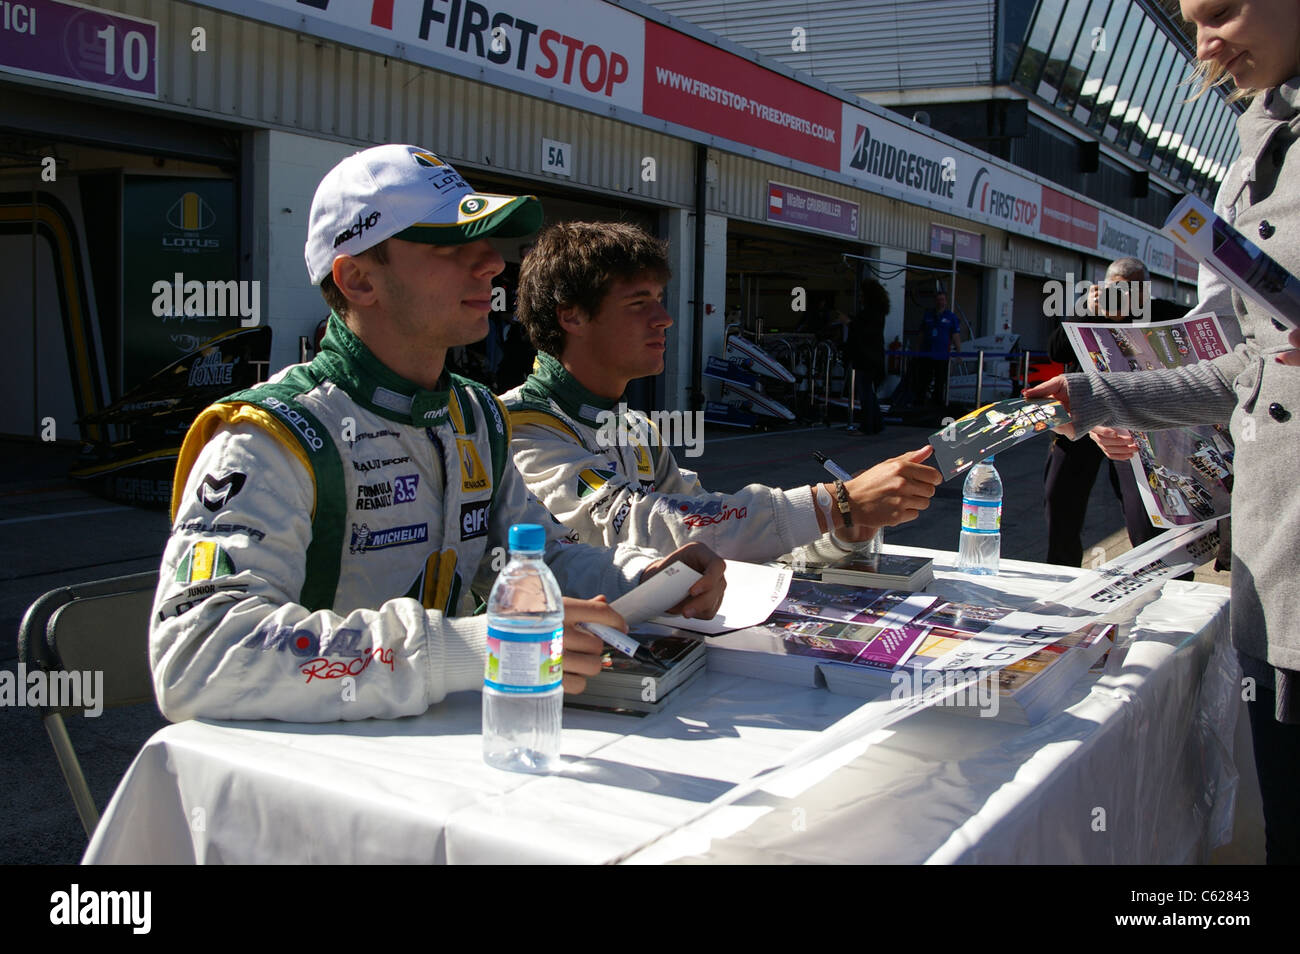 Drivers of Junior Team Lotus, Nelson Panciatici and Daniil Move give autographs before the race on World Series - Stock Image